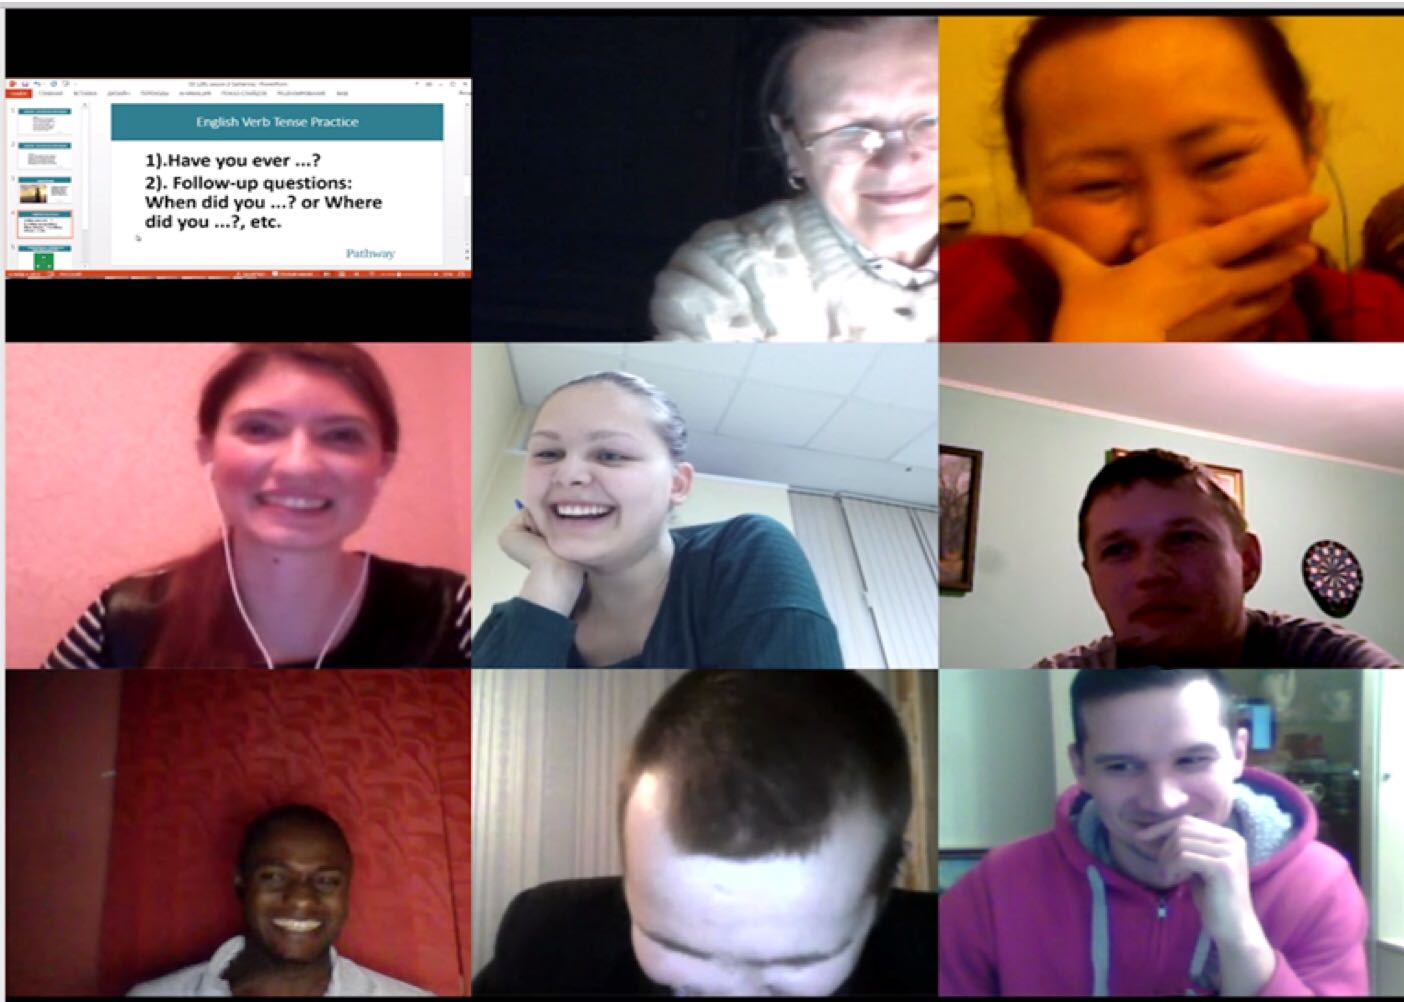 PathwayConnect students meet together online in weekly gatherings to review and discuss their course curriculum and assist each other in practicing English language skills.